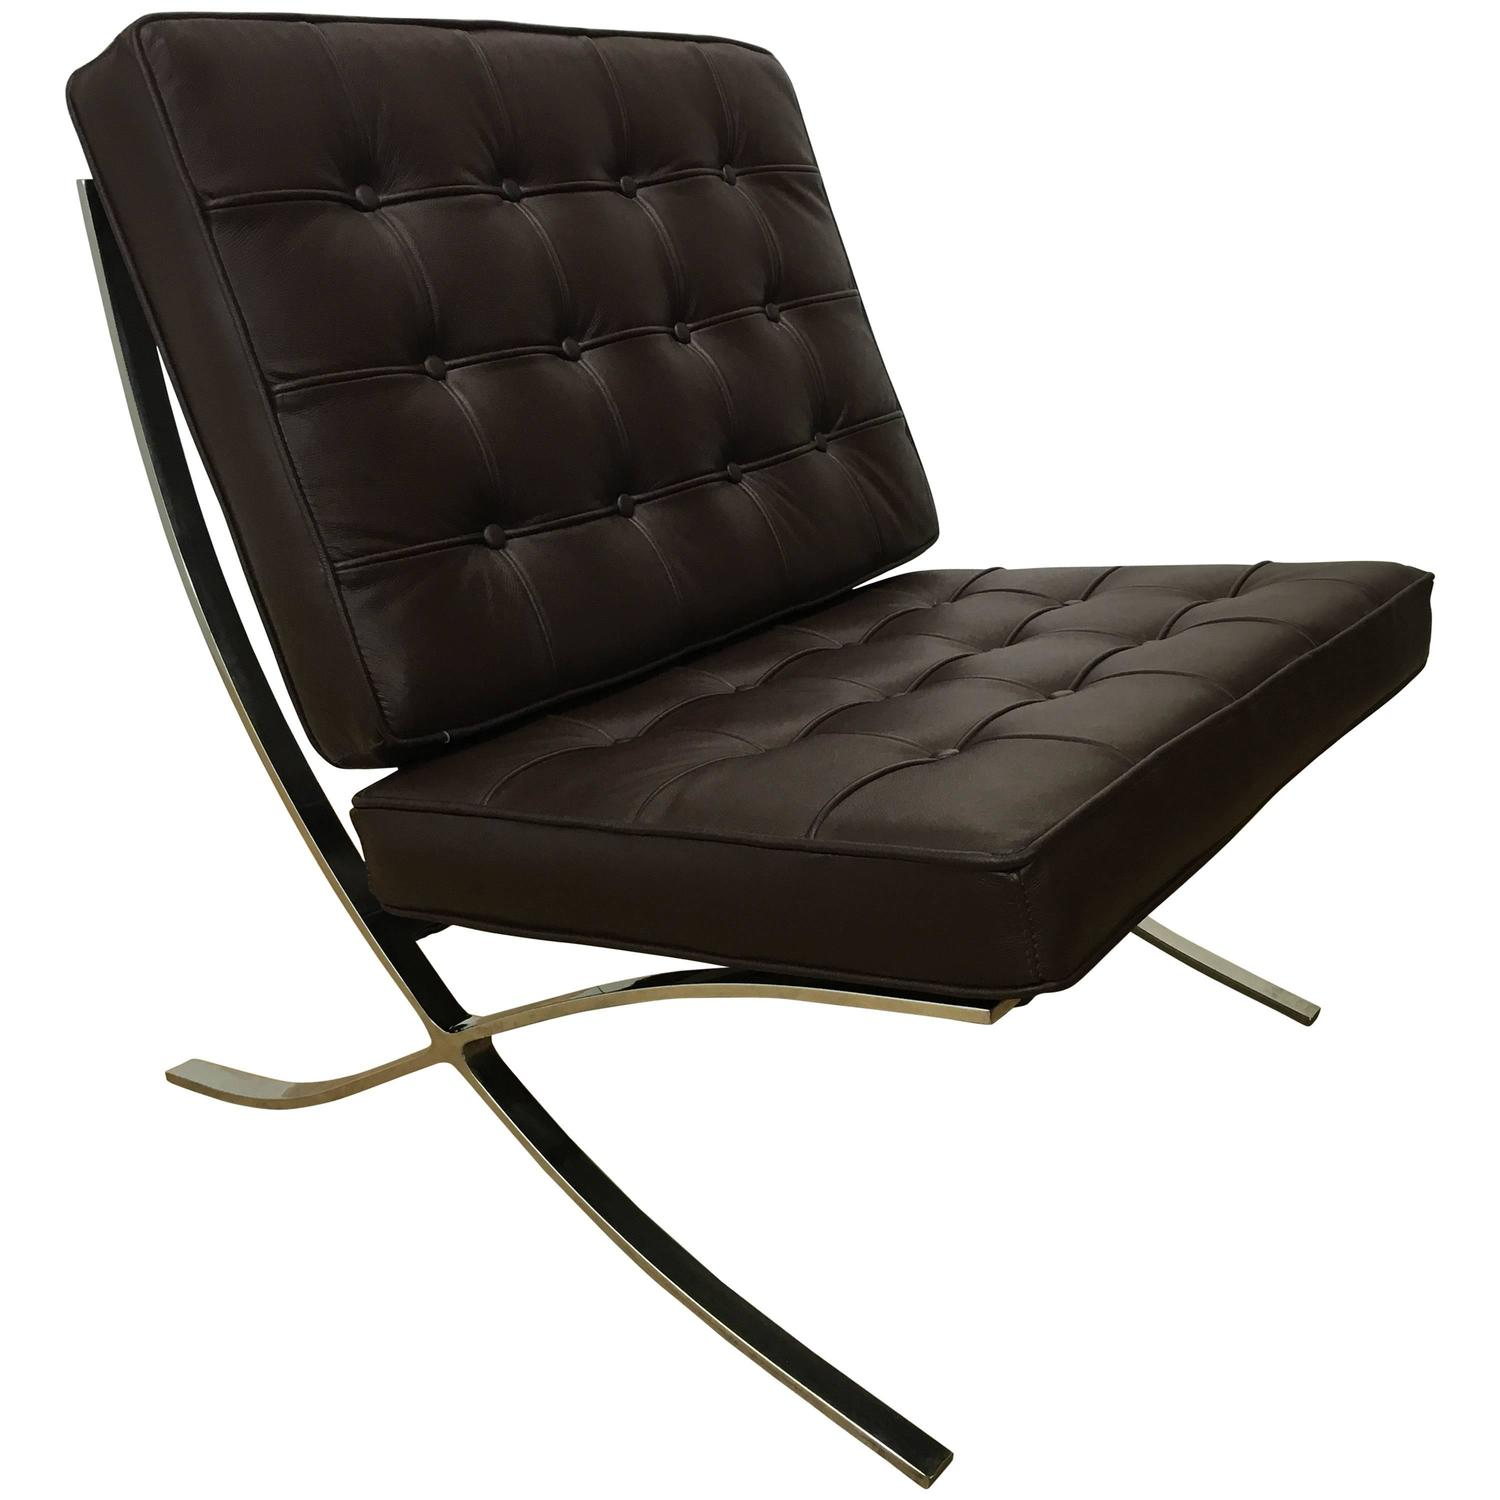 Barcelona Lounge Chair Handsome Brown Leather Barcelona Lounge Chair For Sale At